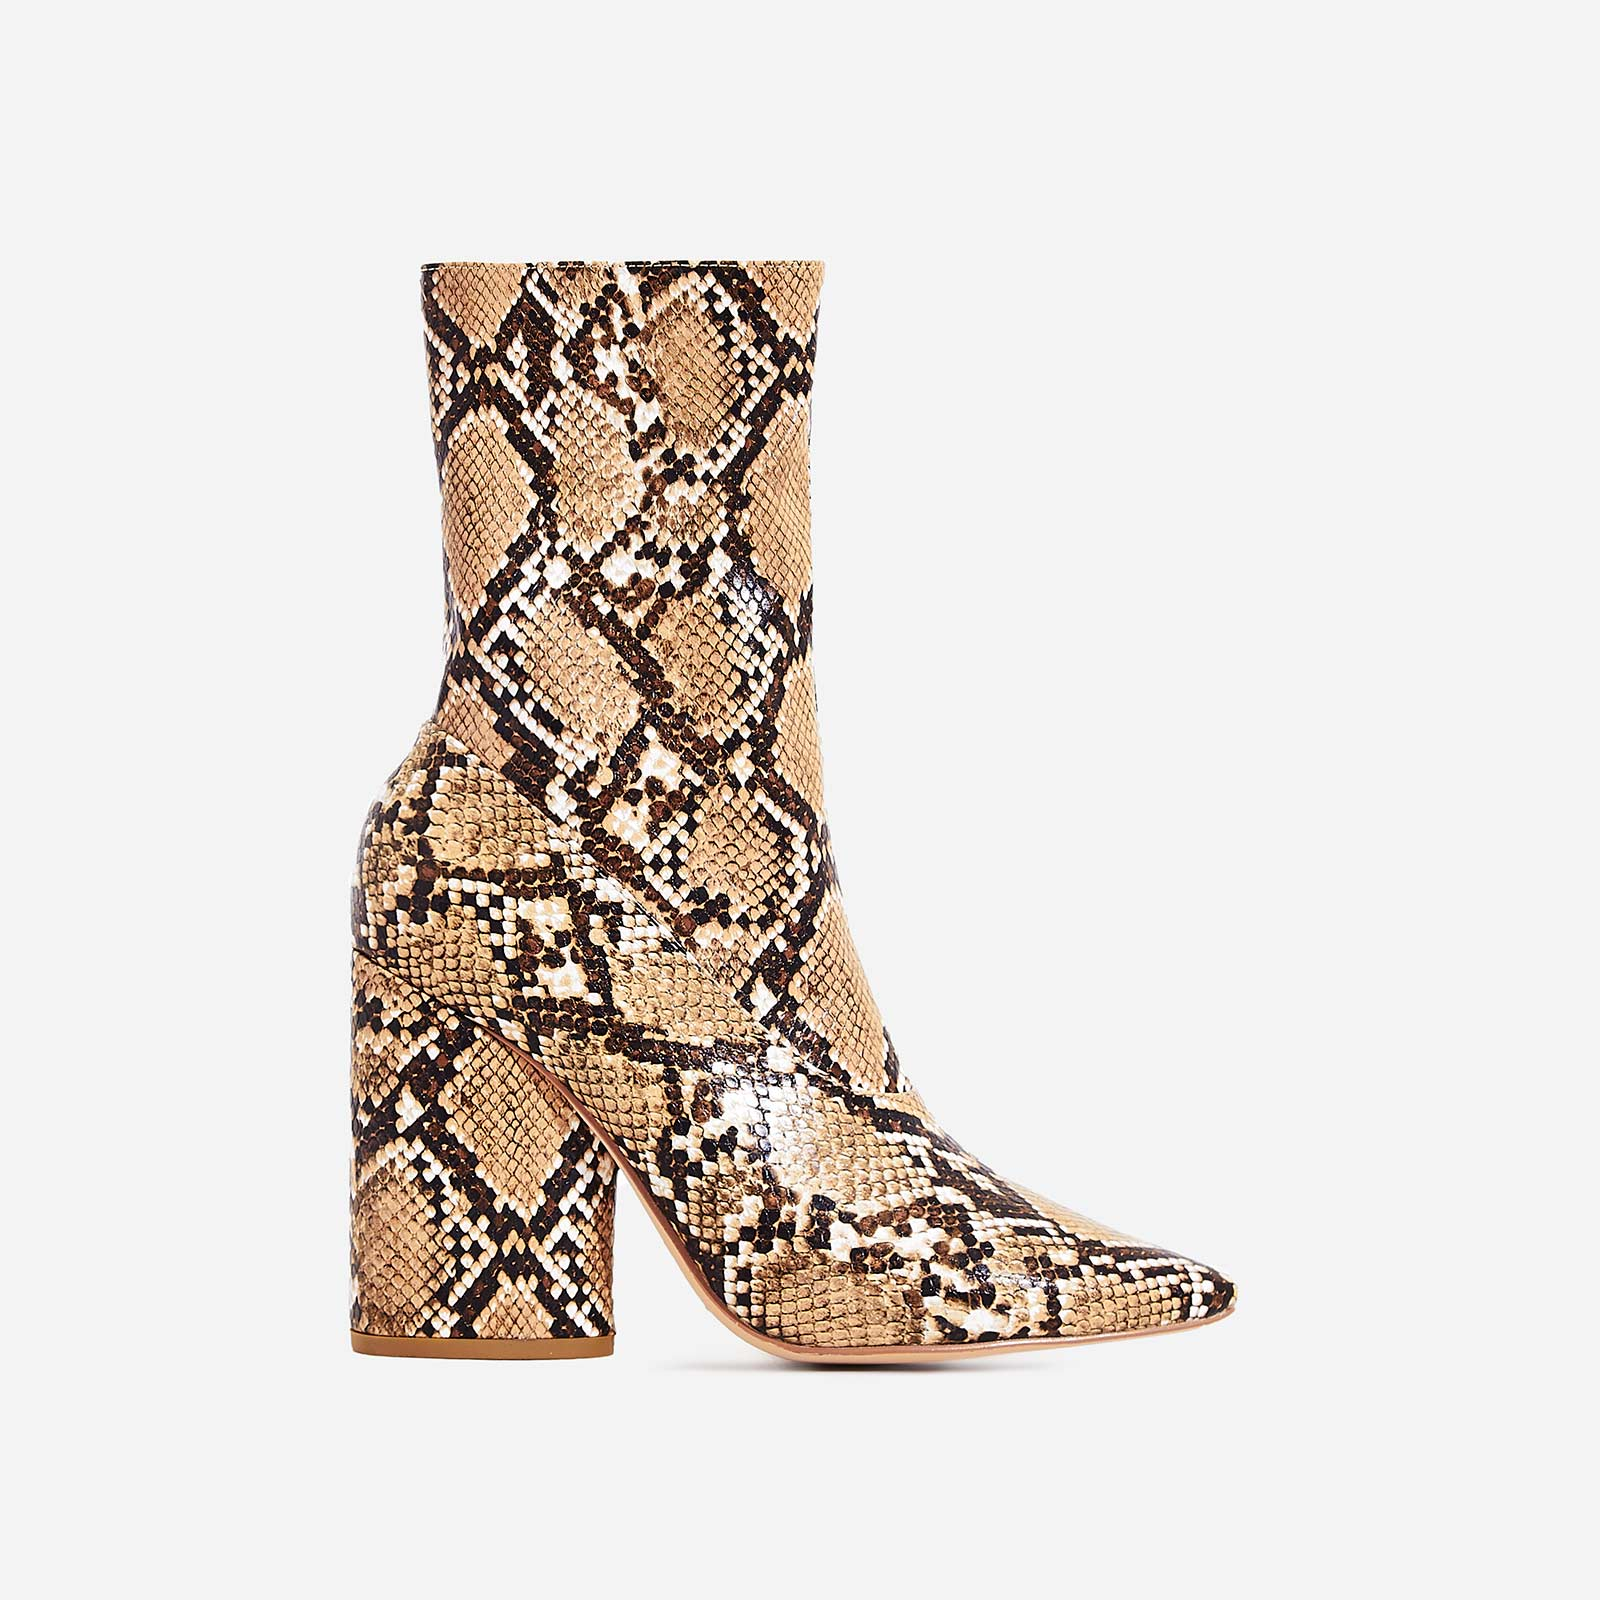 Ameera Block Heel Pointed Ankle Boot In Nude Snake Print Faux Leather